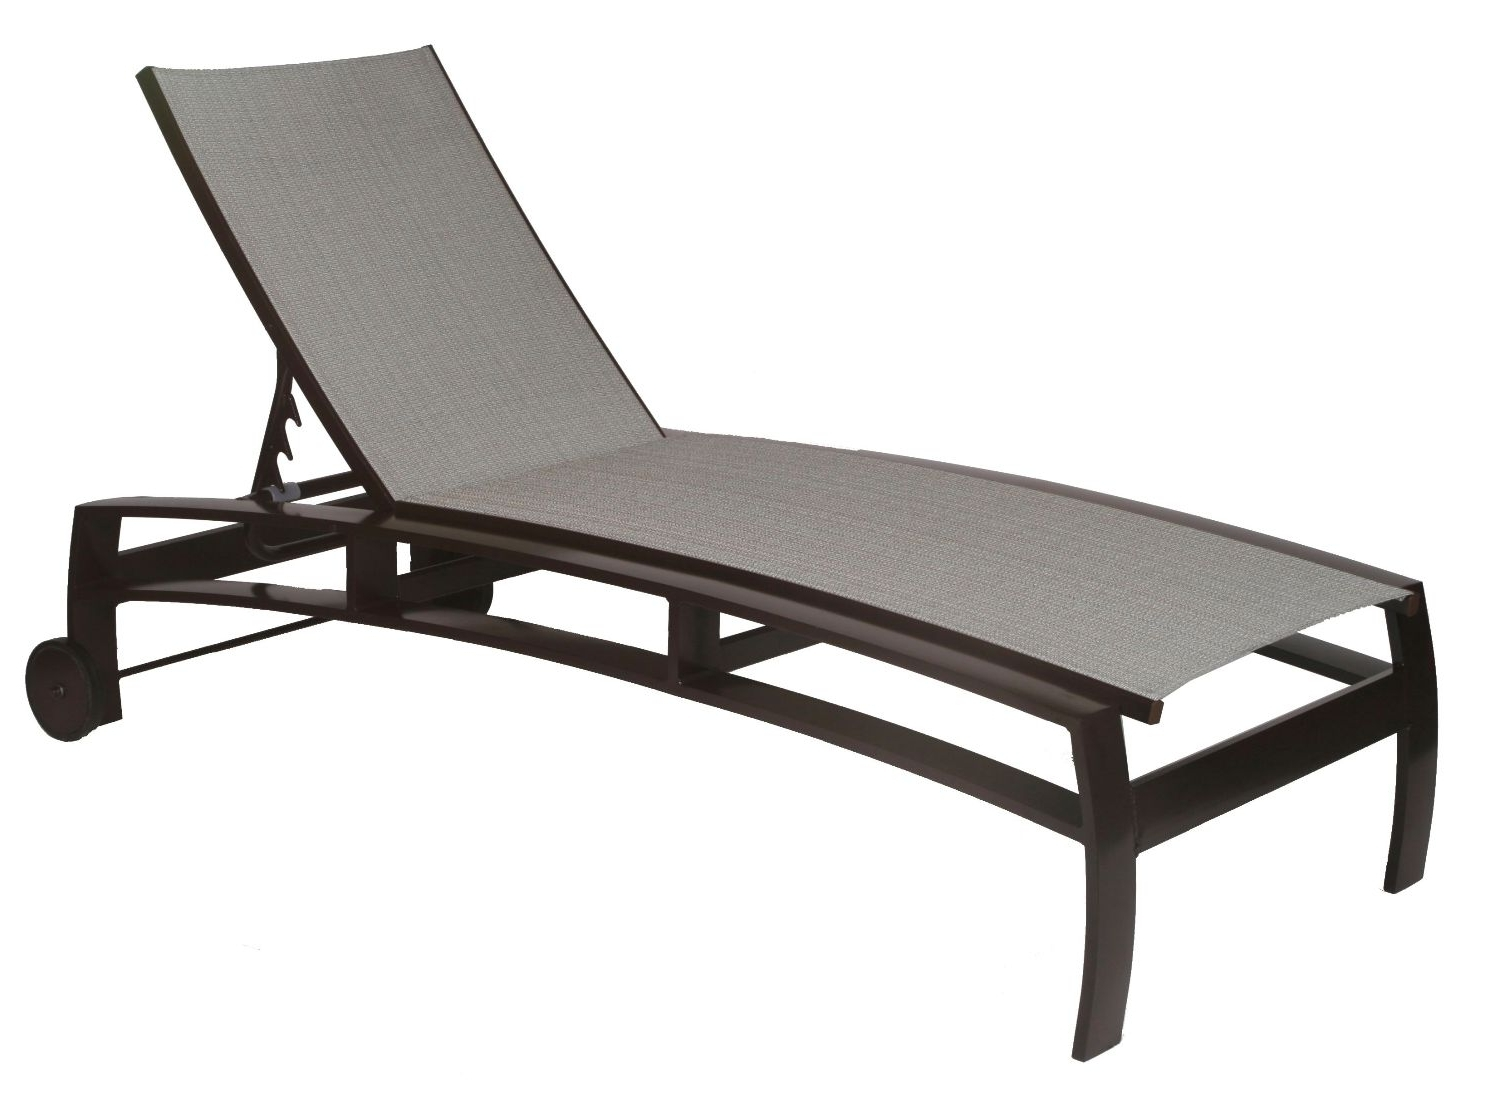 sling chaise lounge chair how to make rocking arm cushions 15 the best chairs for outdoor